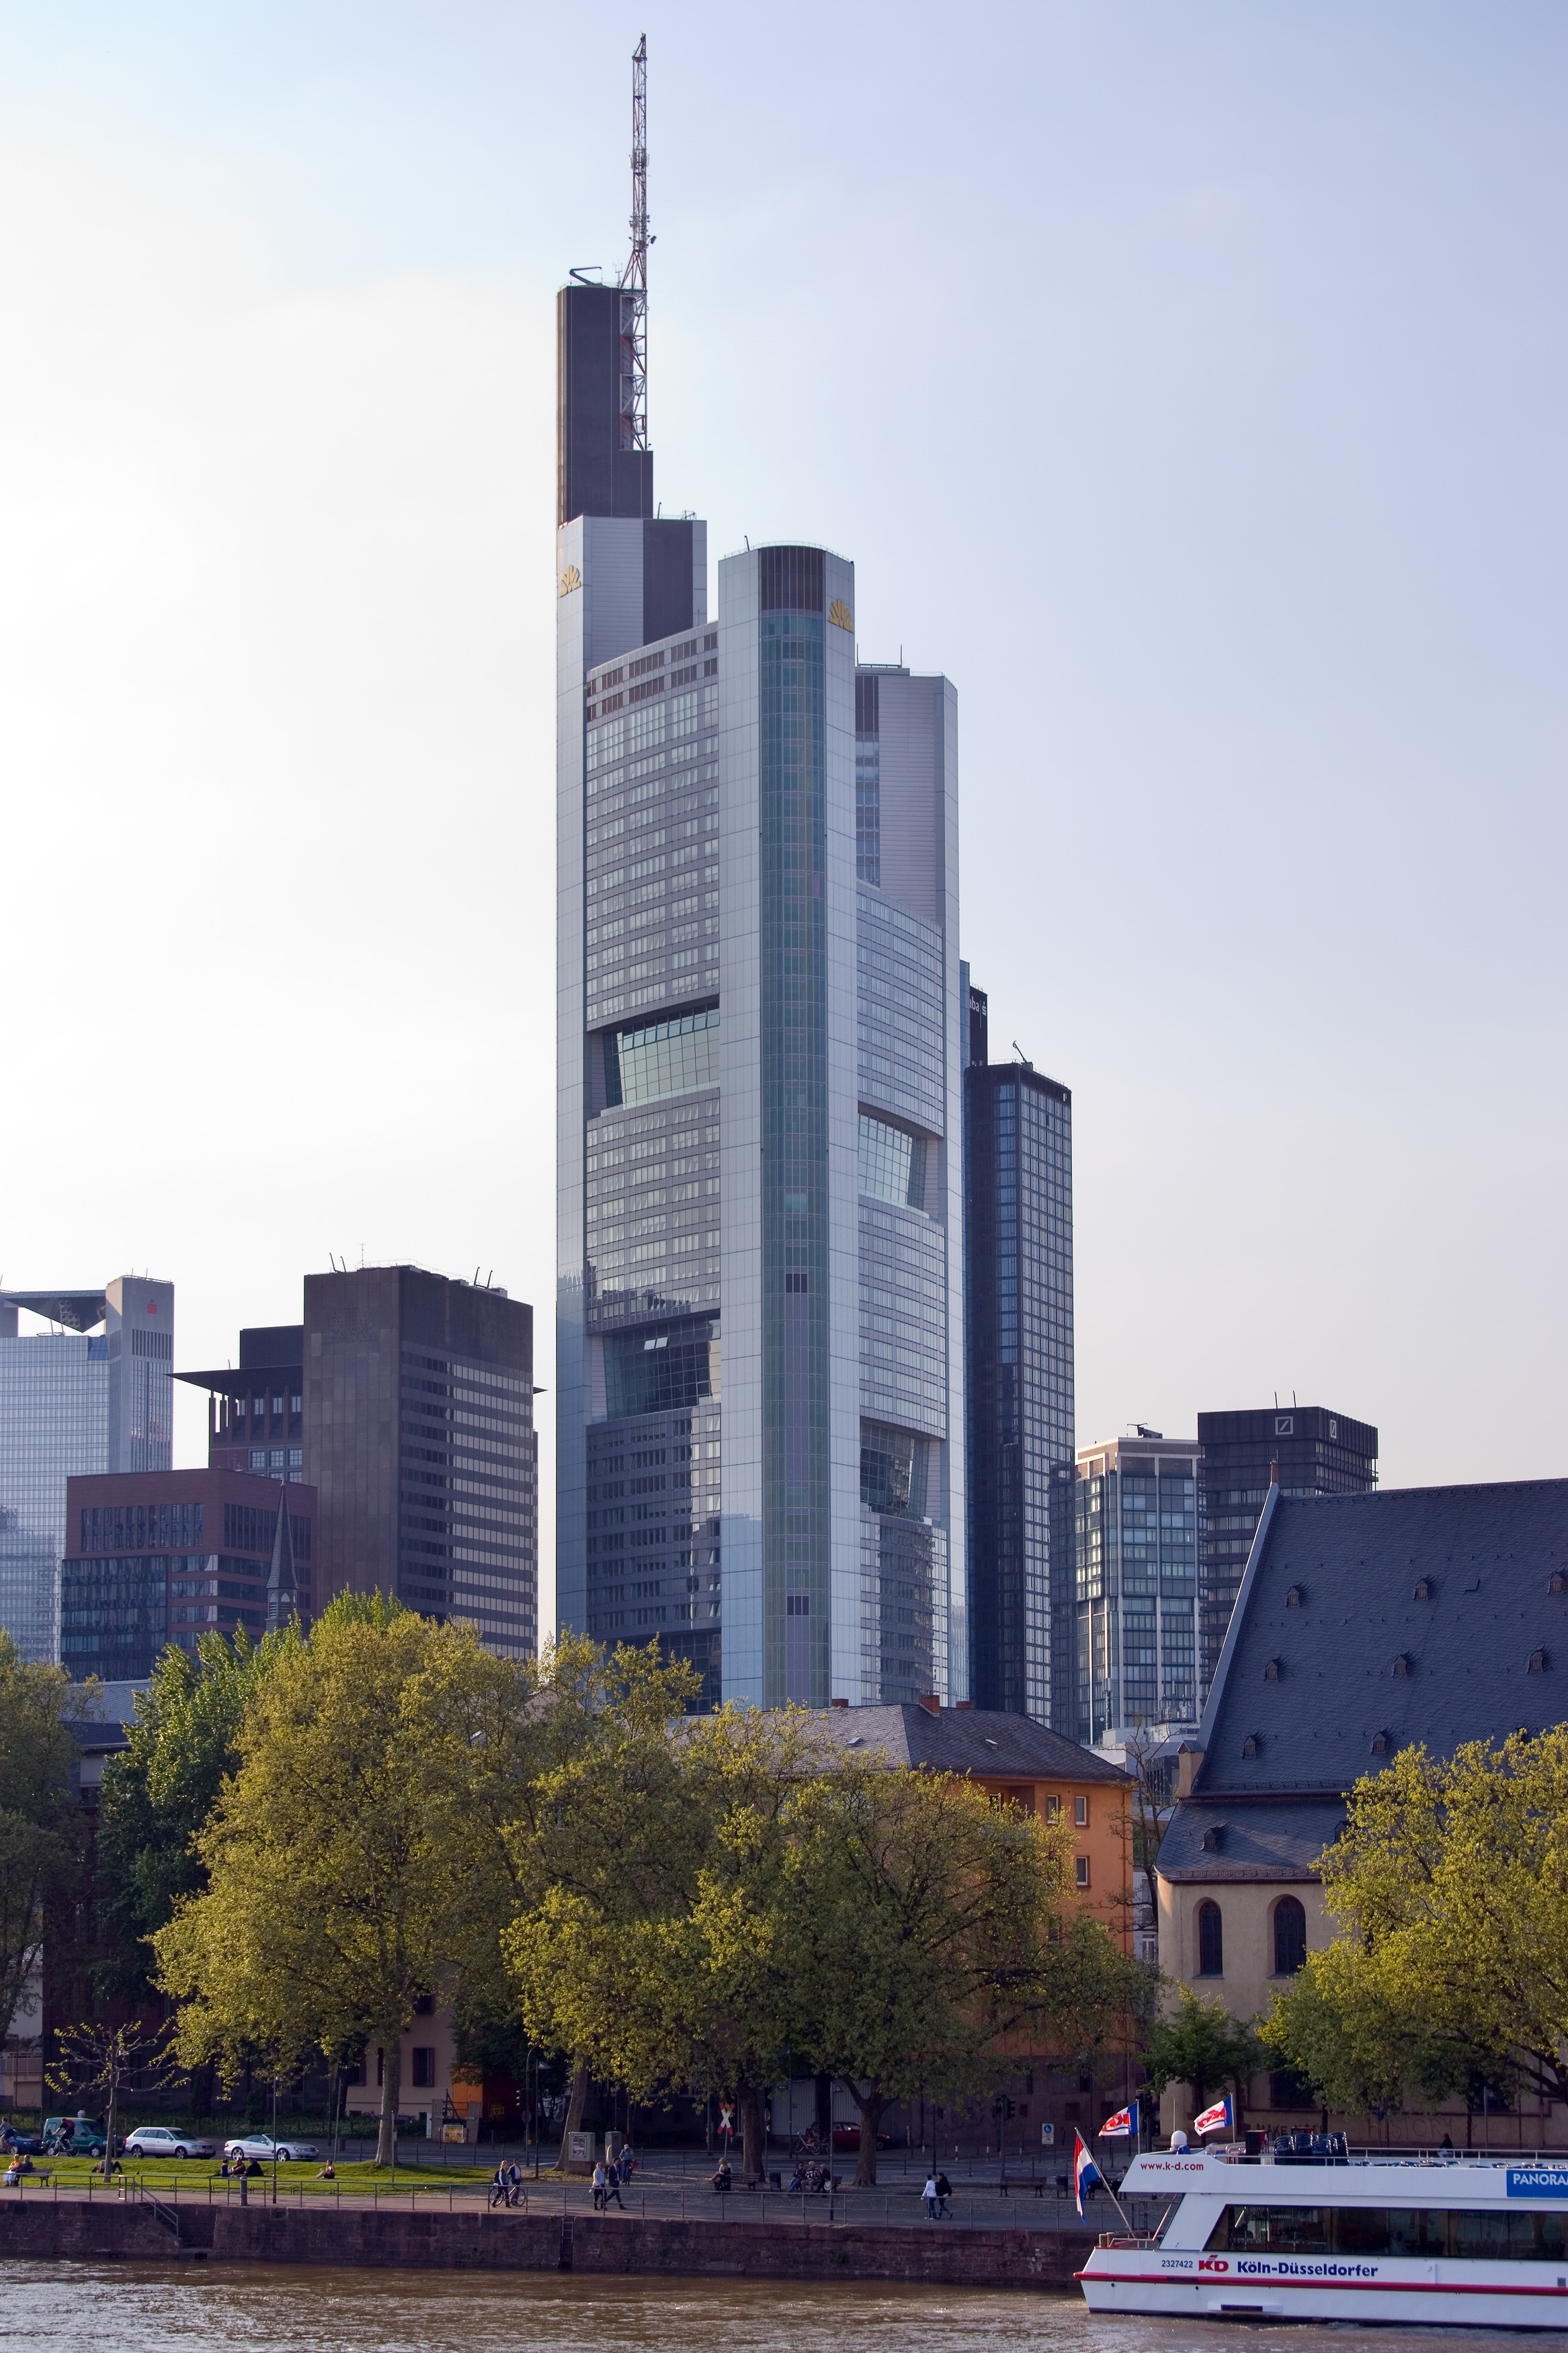 https://i1.wp.com/upload.wikimedia.org/wikipedia/commons/0/0c/Frankfurt_Am_Main-Commerzbank_Tower-Ansicht_vom_Eisernen_Steg.jpg